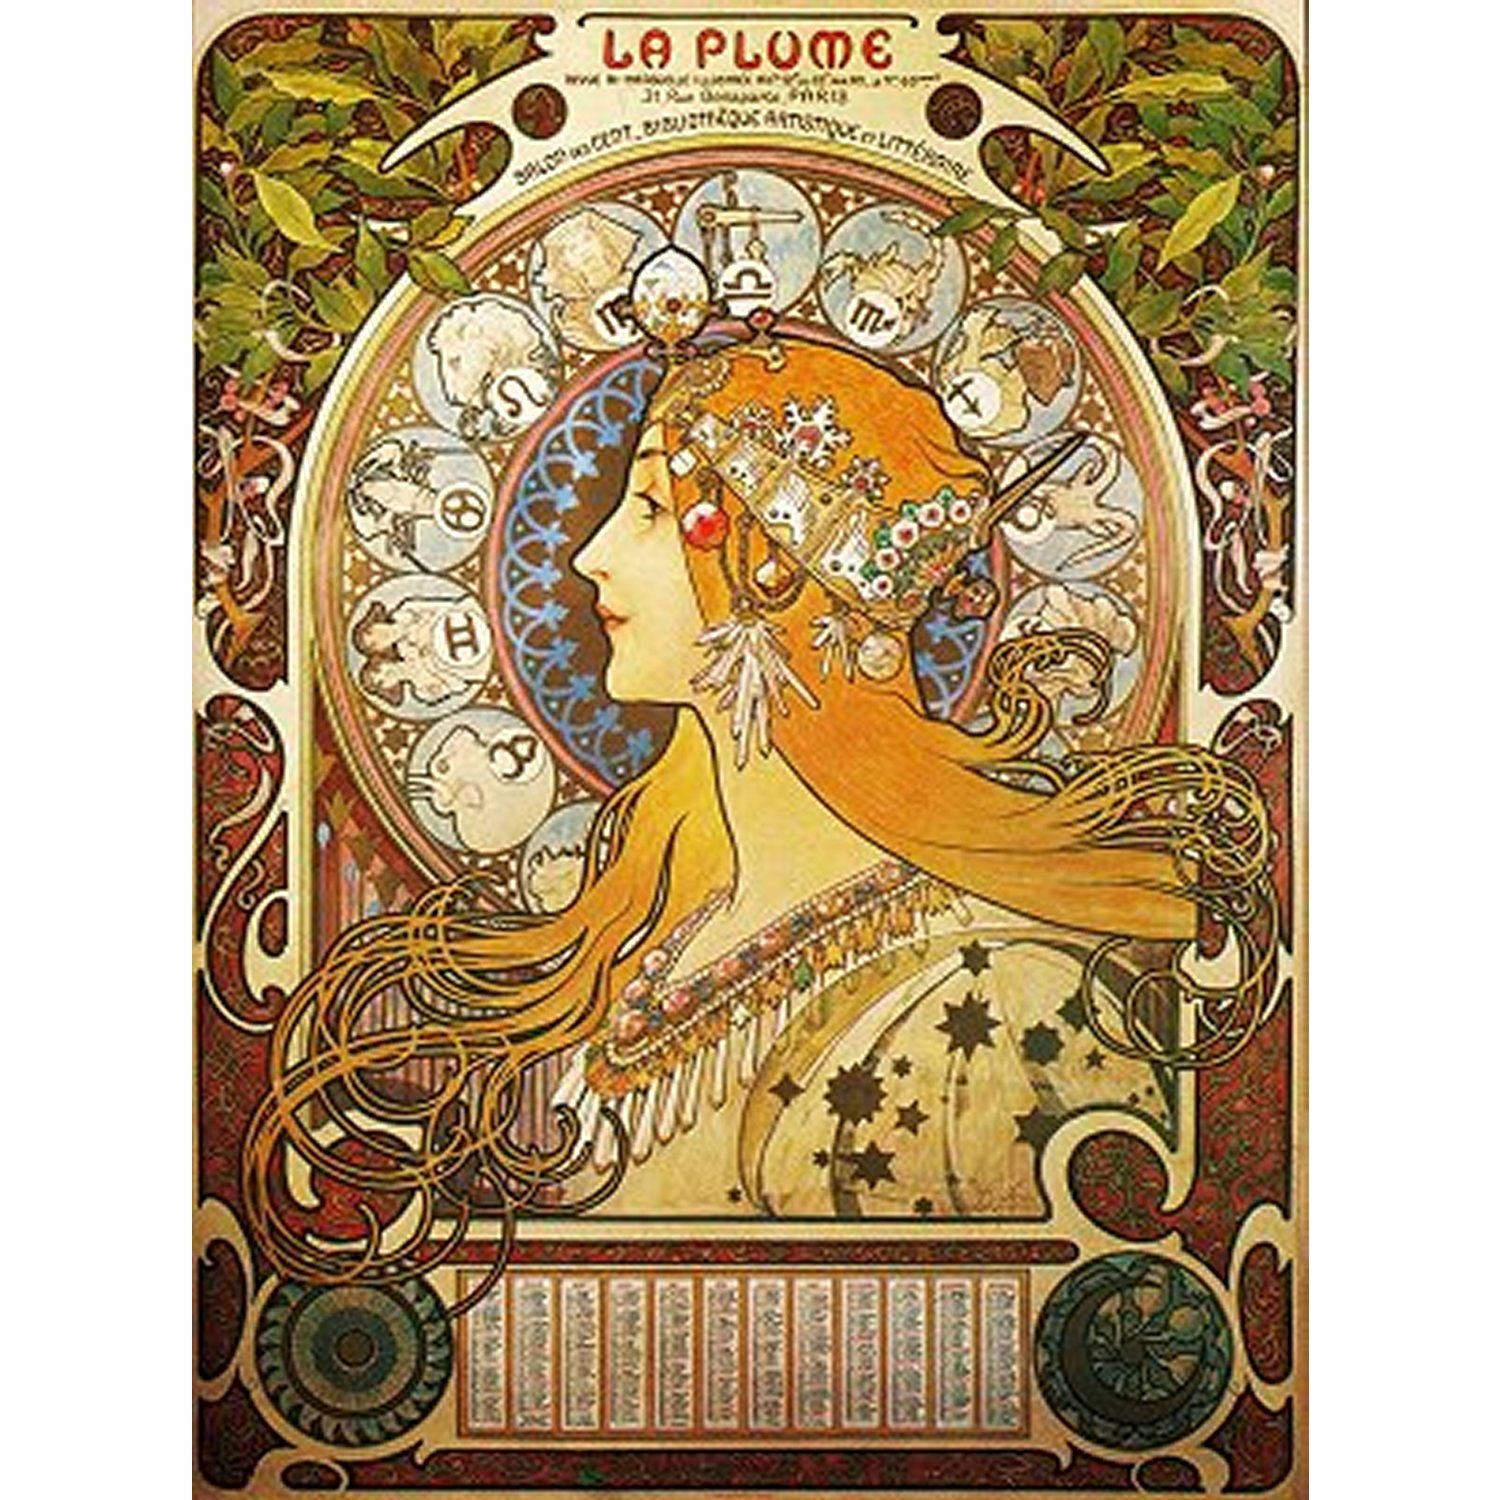 dtoys-alphonse-mucha-sternzeichen-1000-teile-puzzle-dtoys-70111